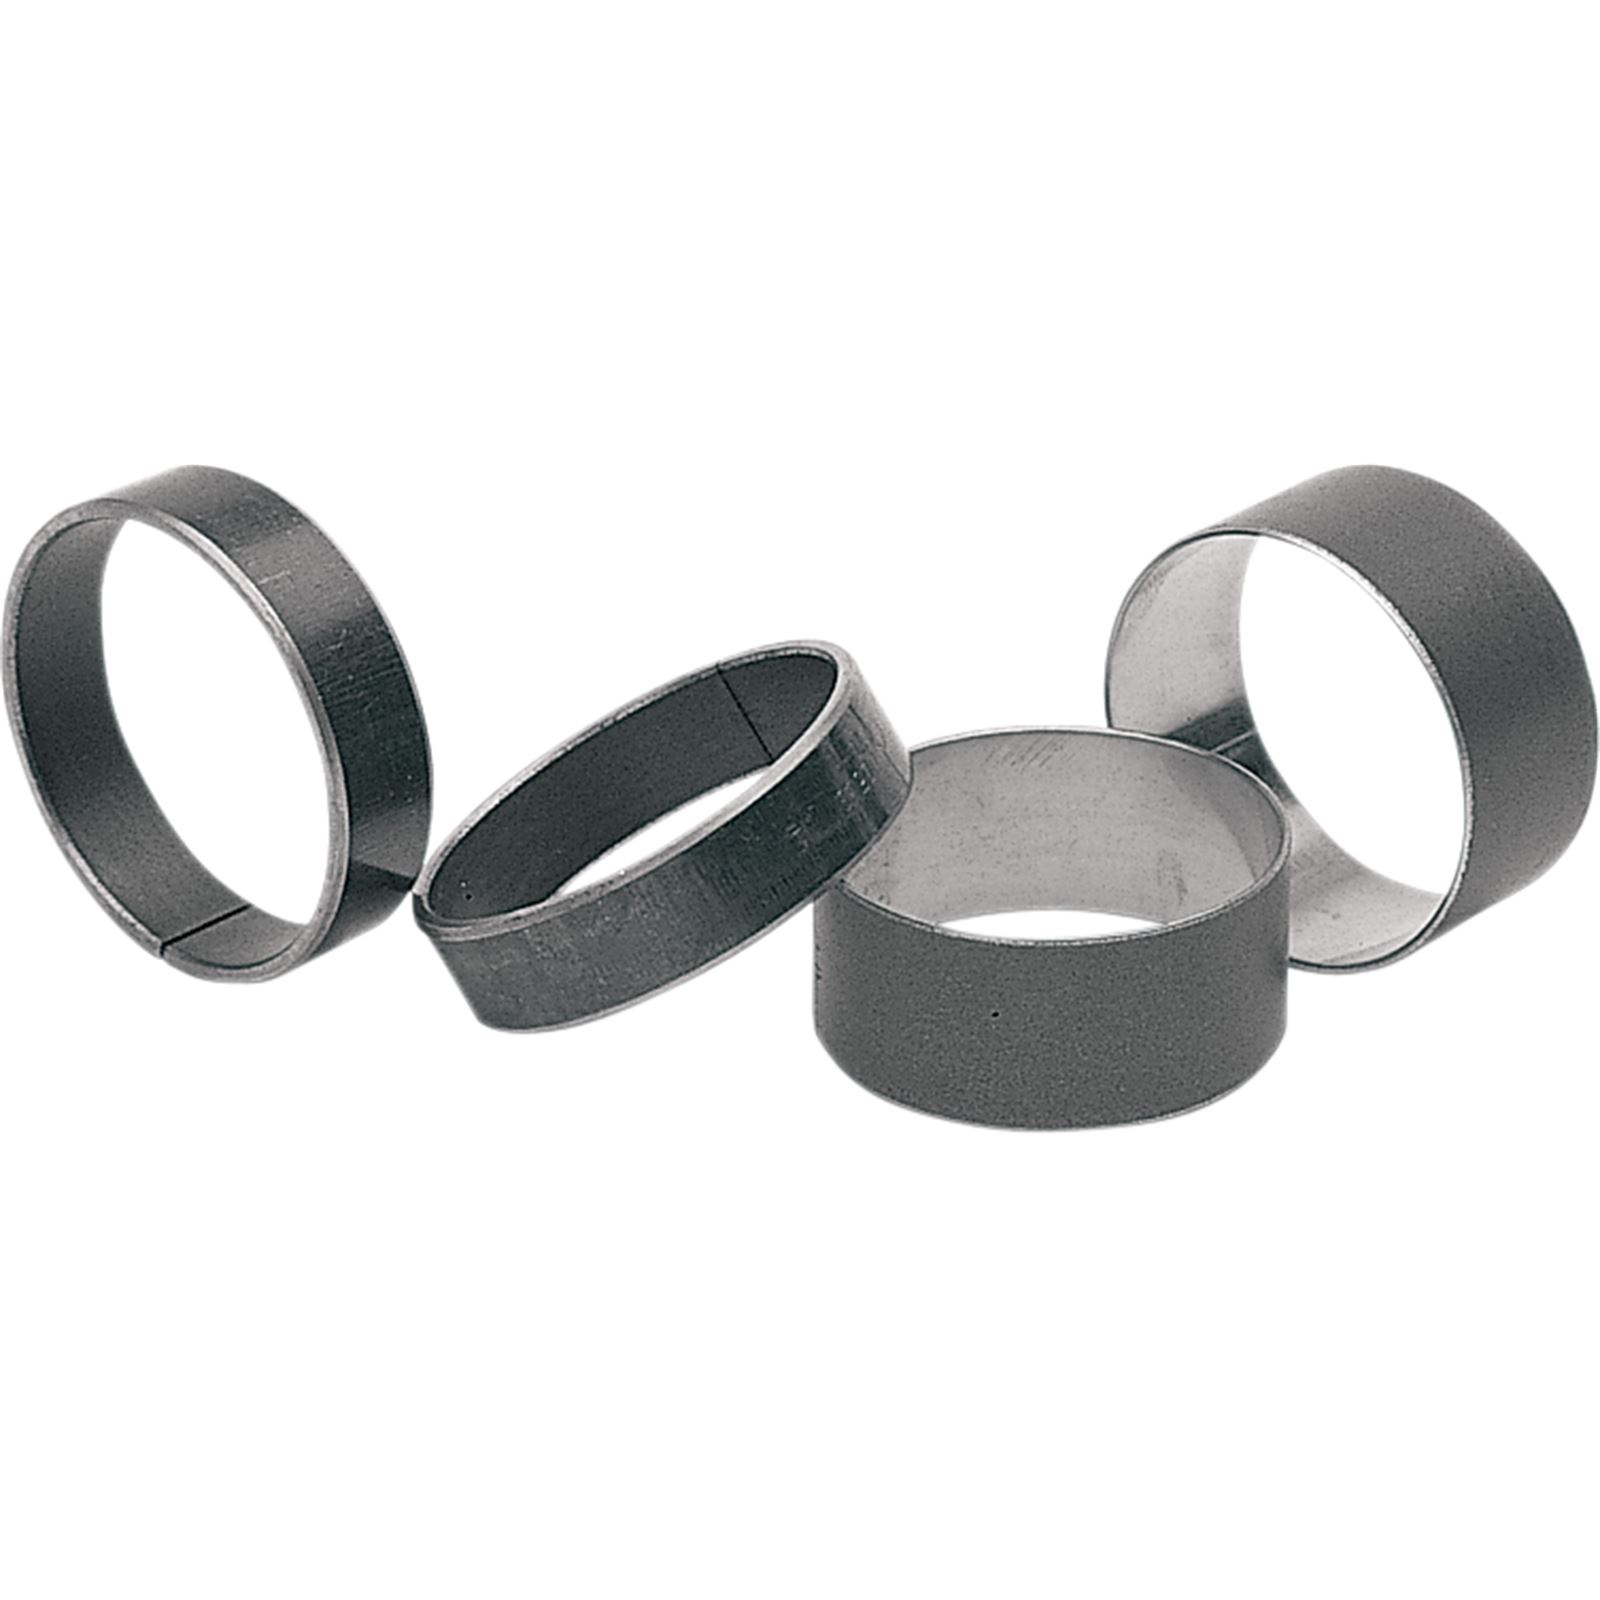 Race Tech Super Slick Outer Fork Bushings - 41 mm - 15 mm W - 2 mm Thick